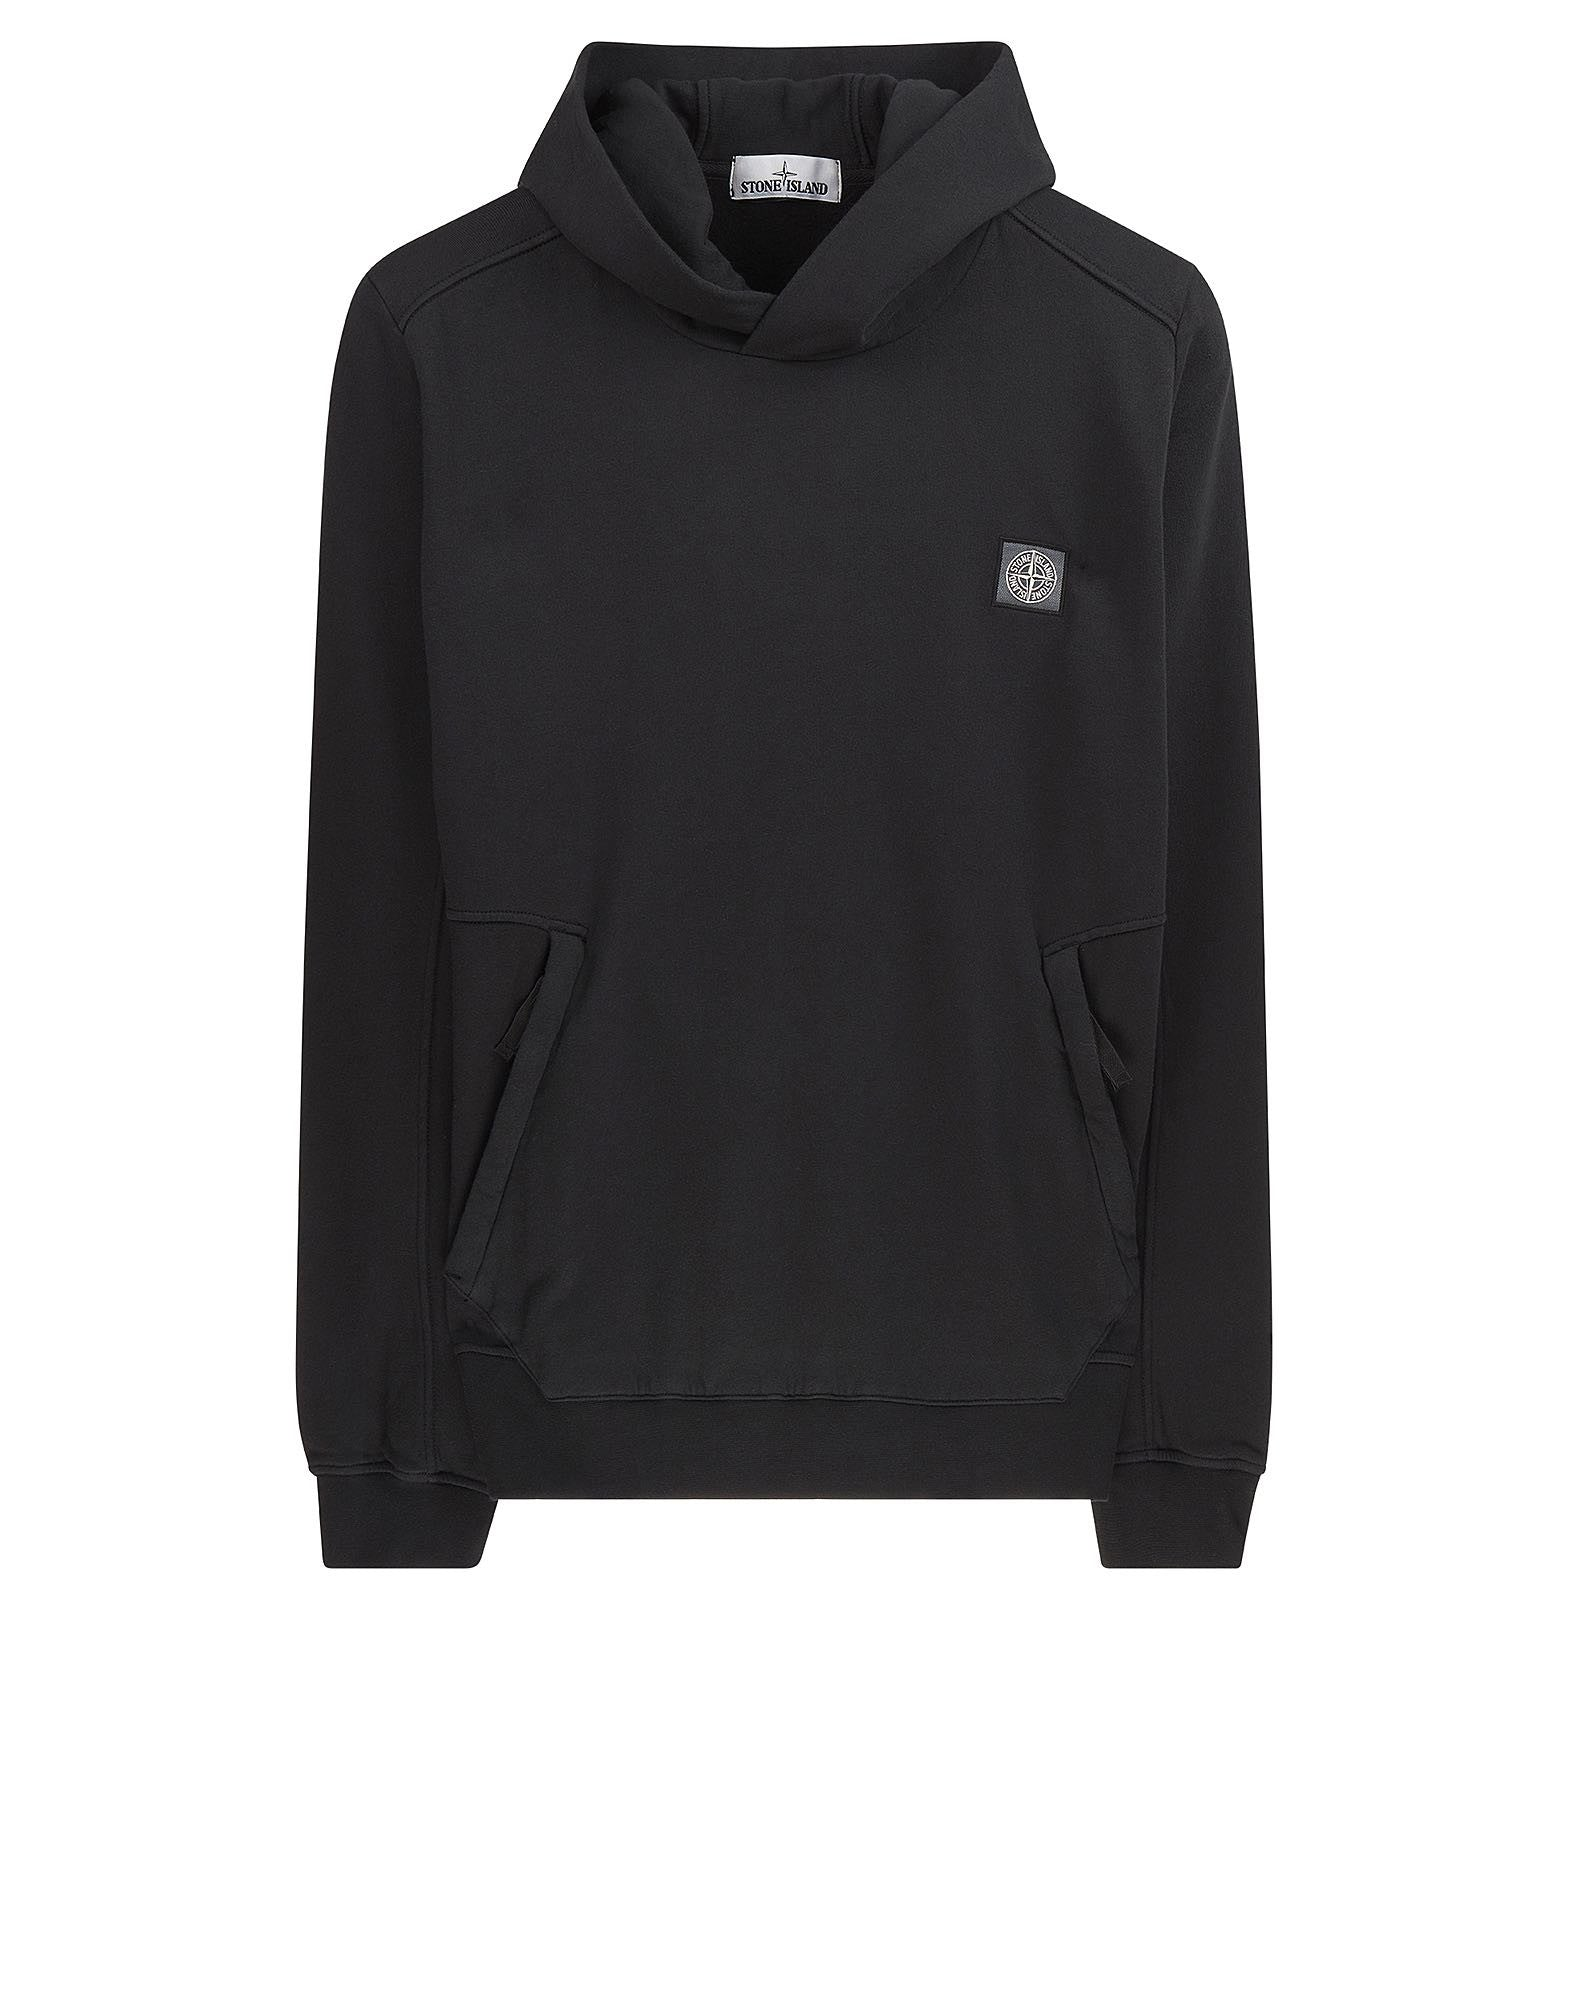 64651 Hooded sweatshirt in Black